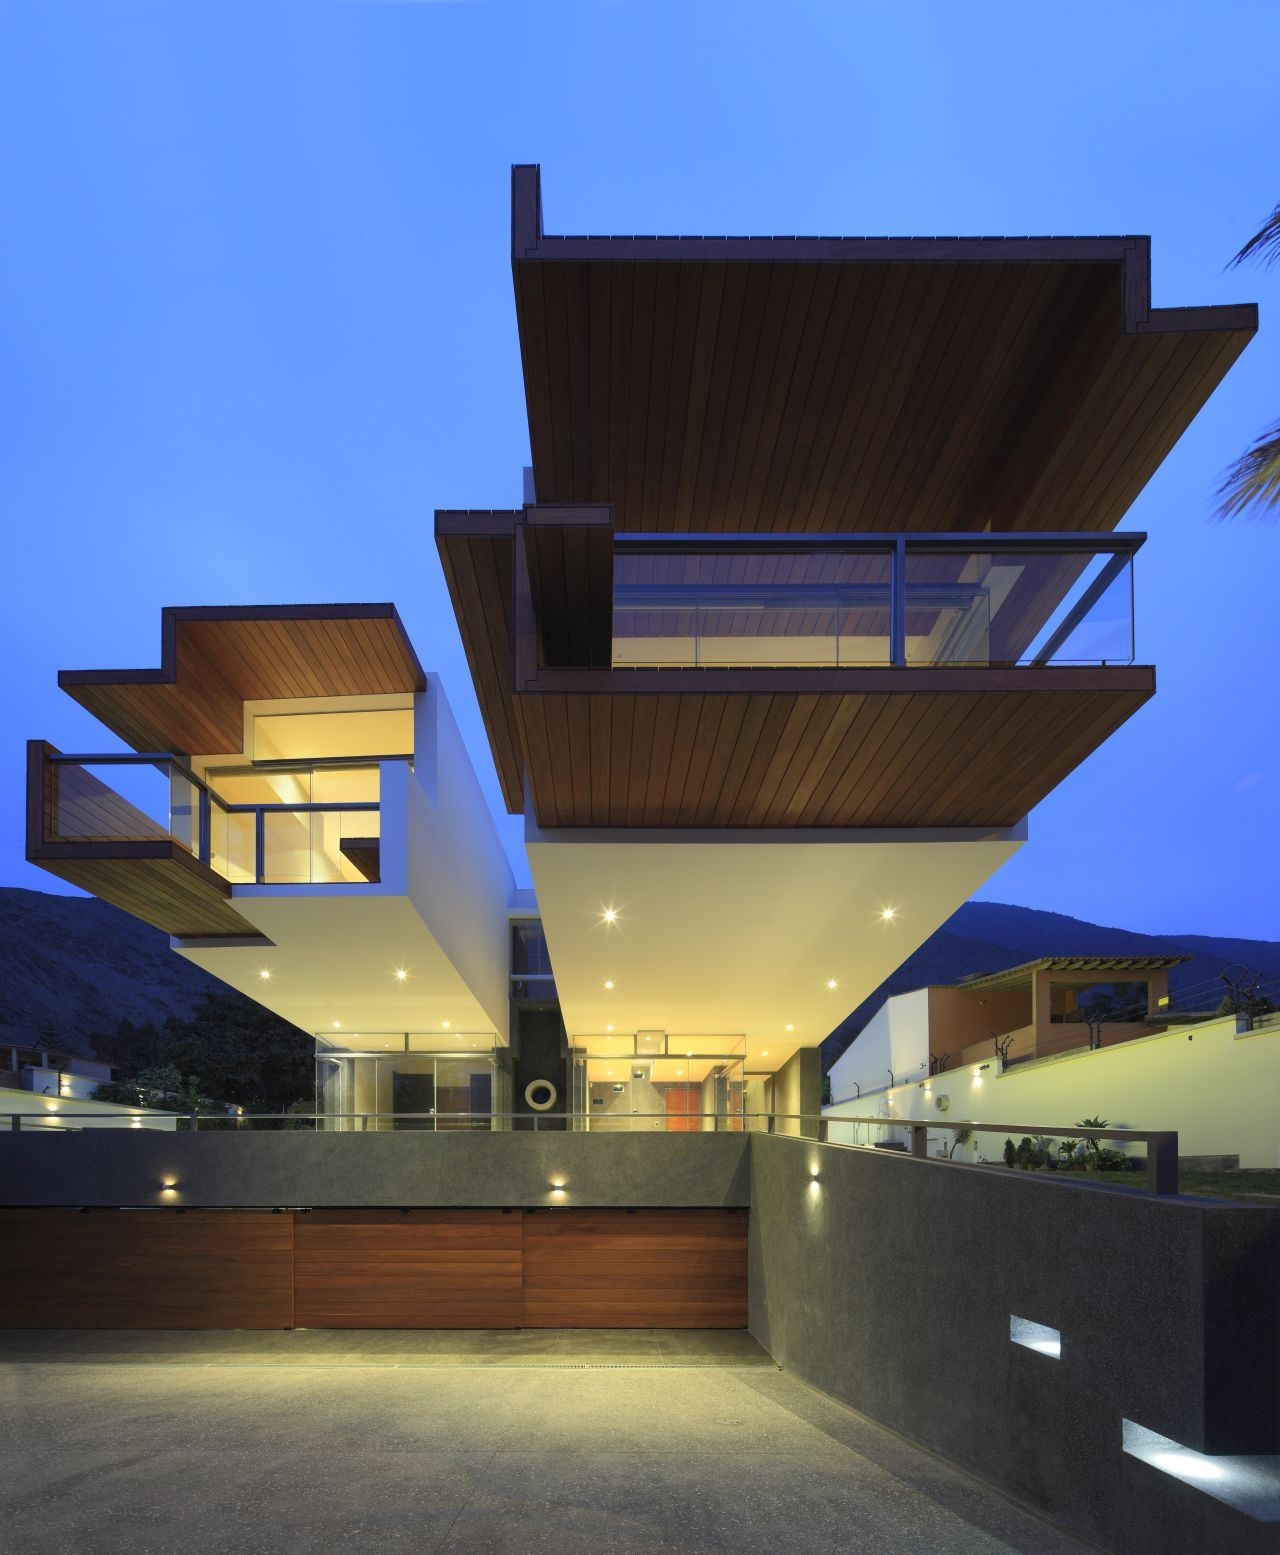 Ancestral Contemporary Architecture: A House To Live In Forever